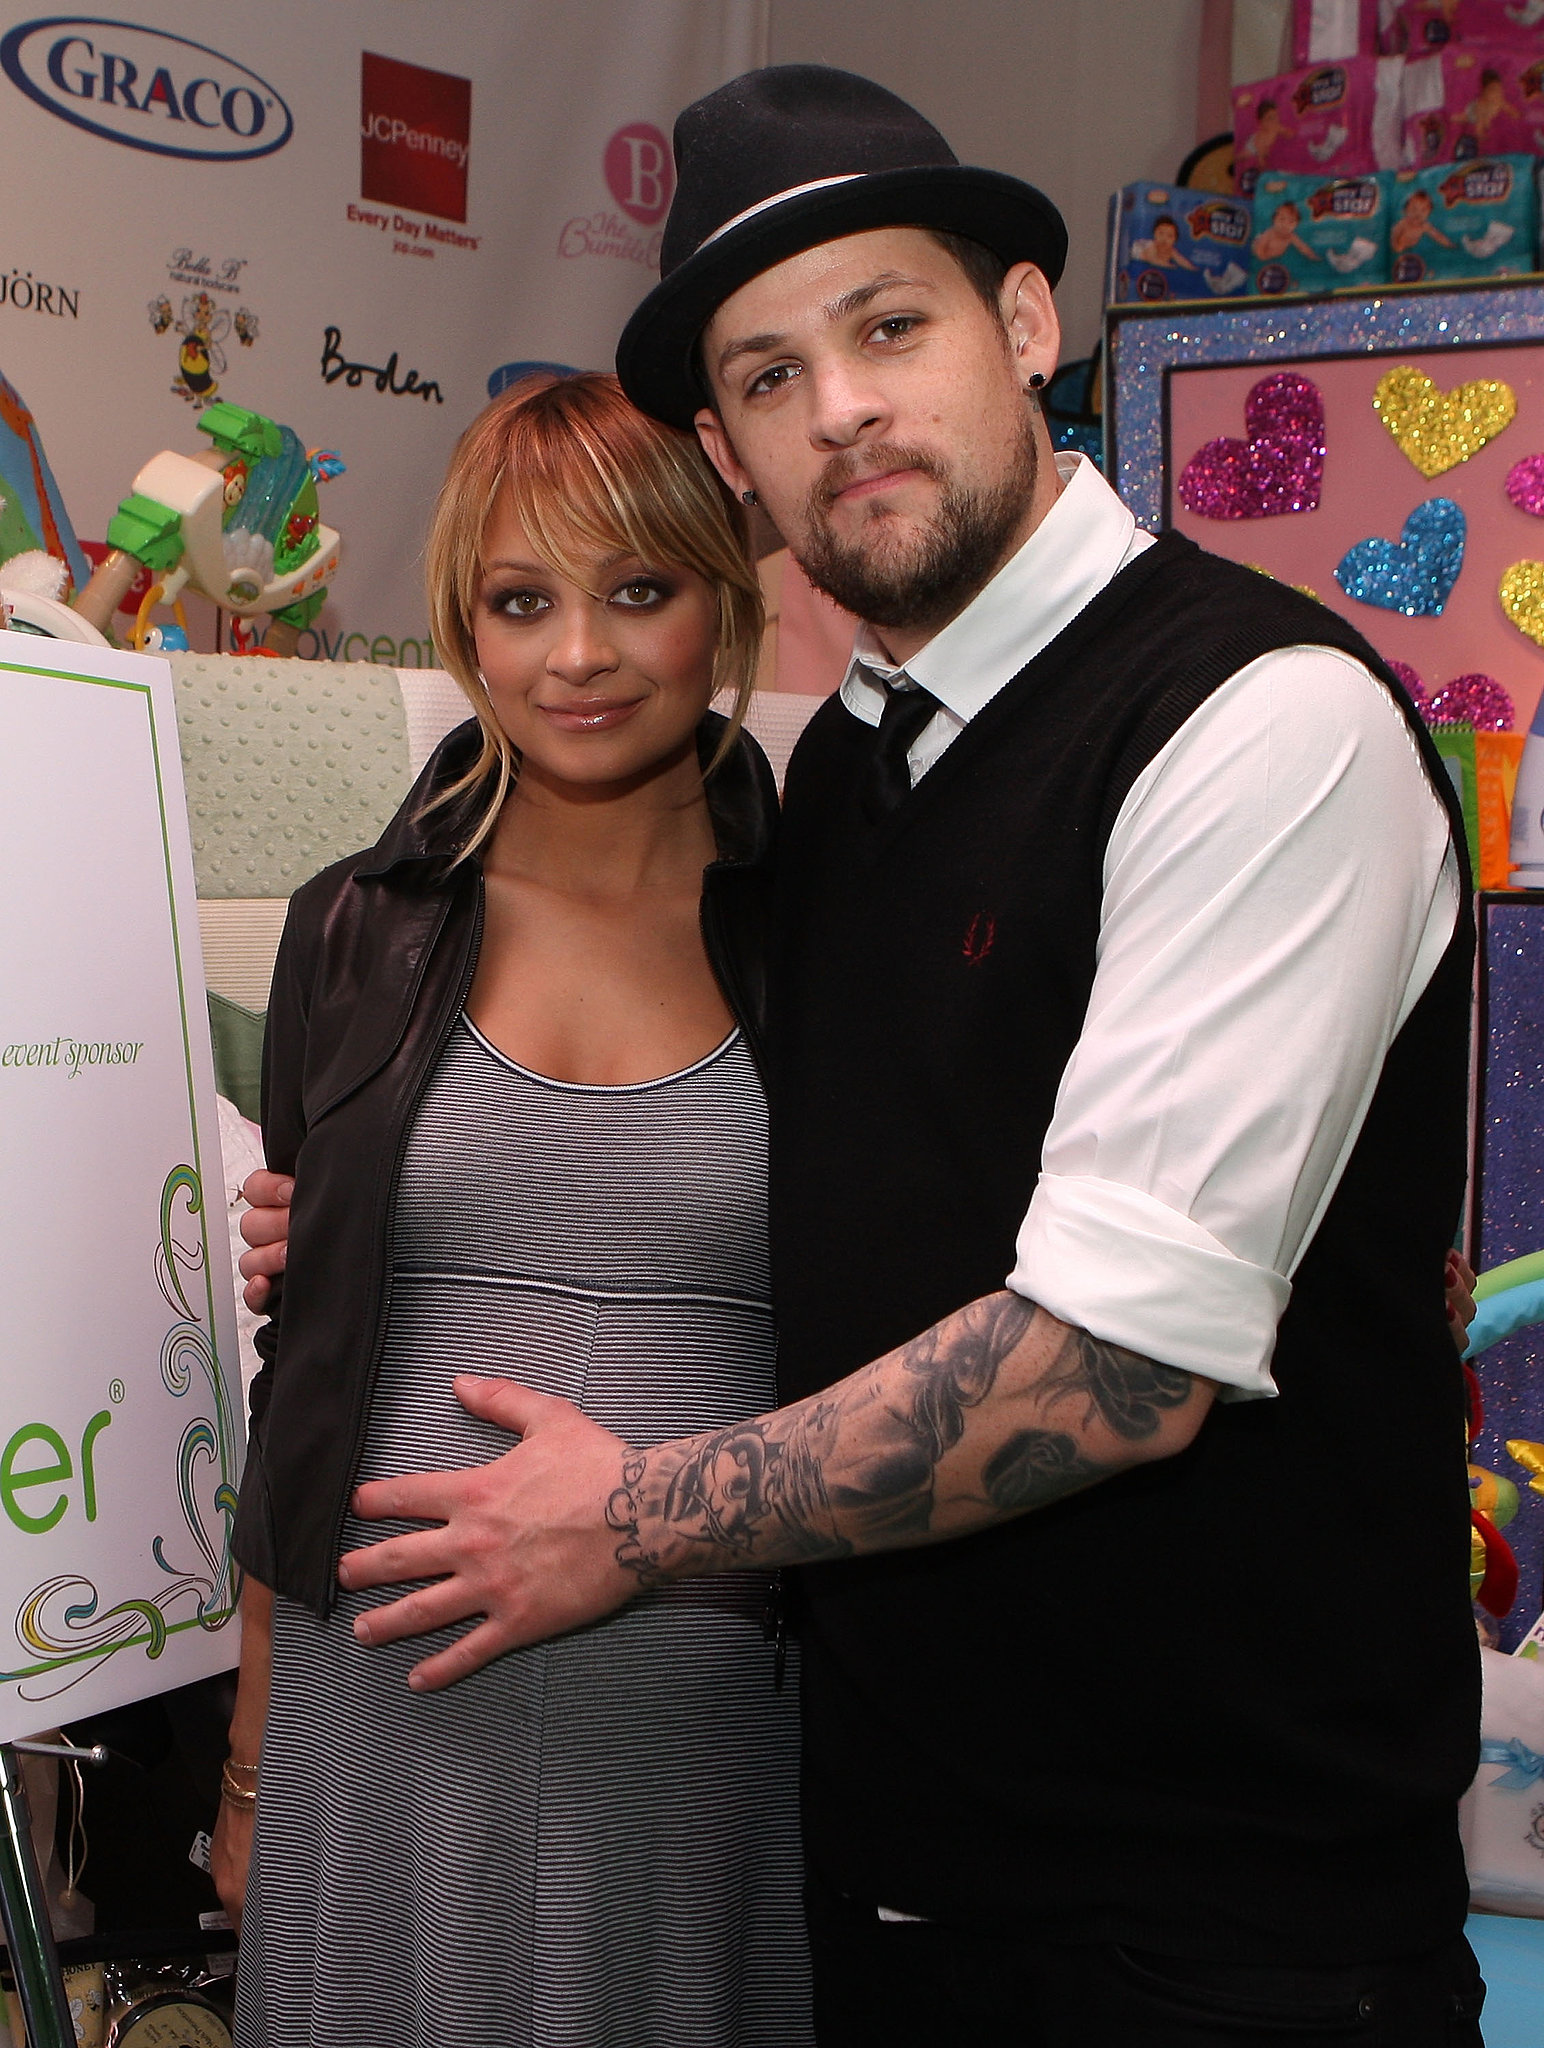 In December 2007, Nicole Richie showed off her growing baby bump while launching The Richie Madden Children's Foundation with Joel Madden, who was then just her boyfriend.